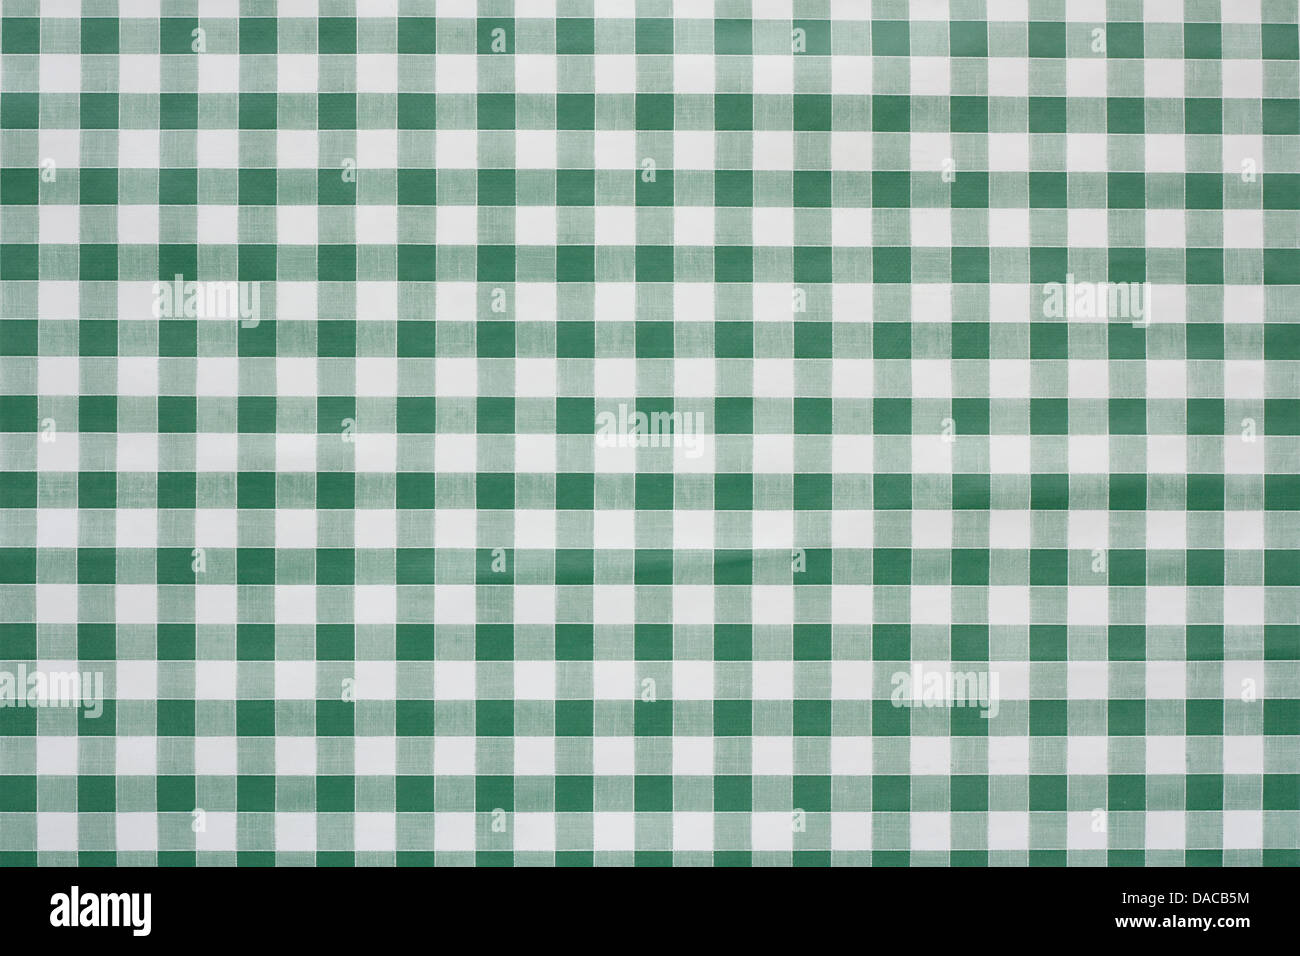 Green gingham tablecloth often found in diners and cafes a popular traditional covering for tables where food is - Stock Image